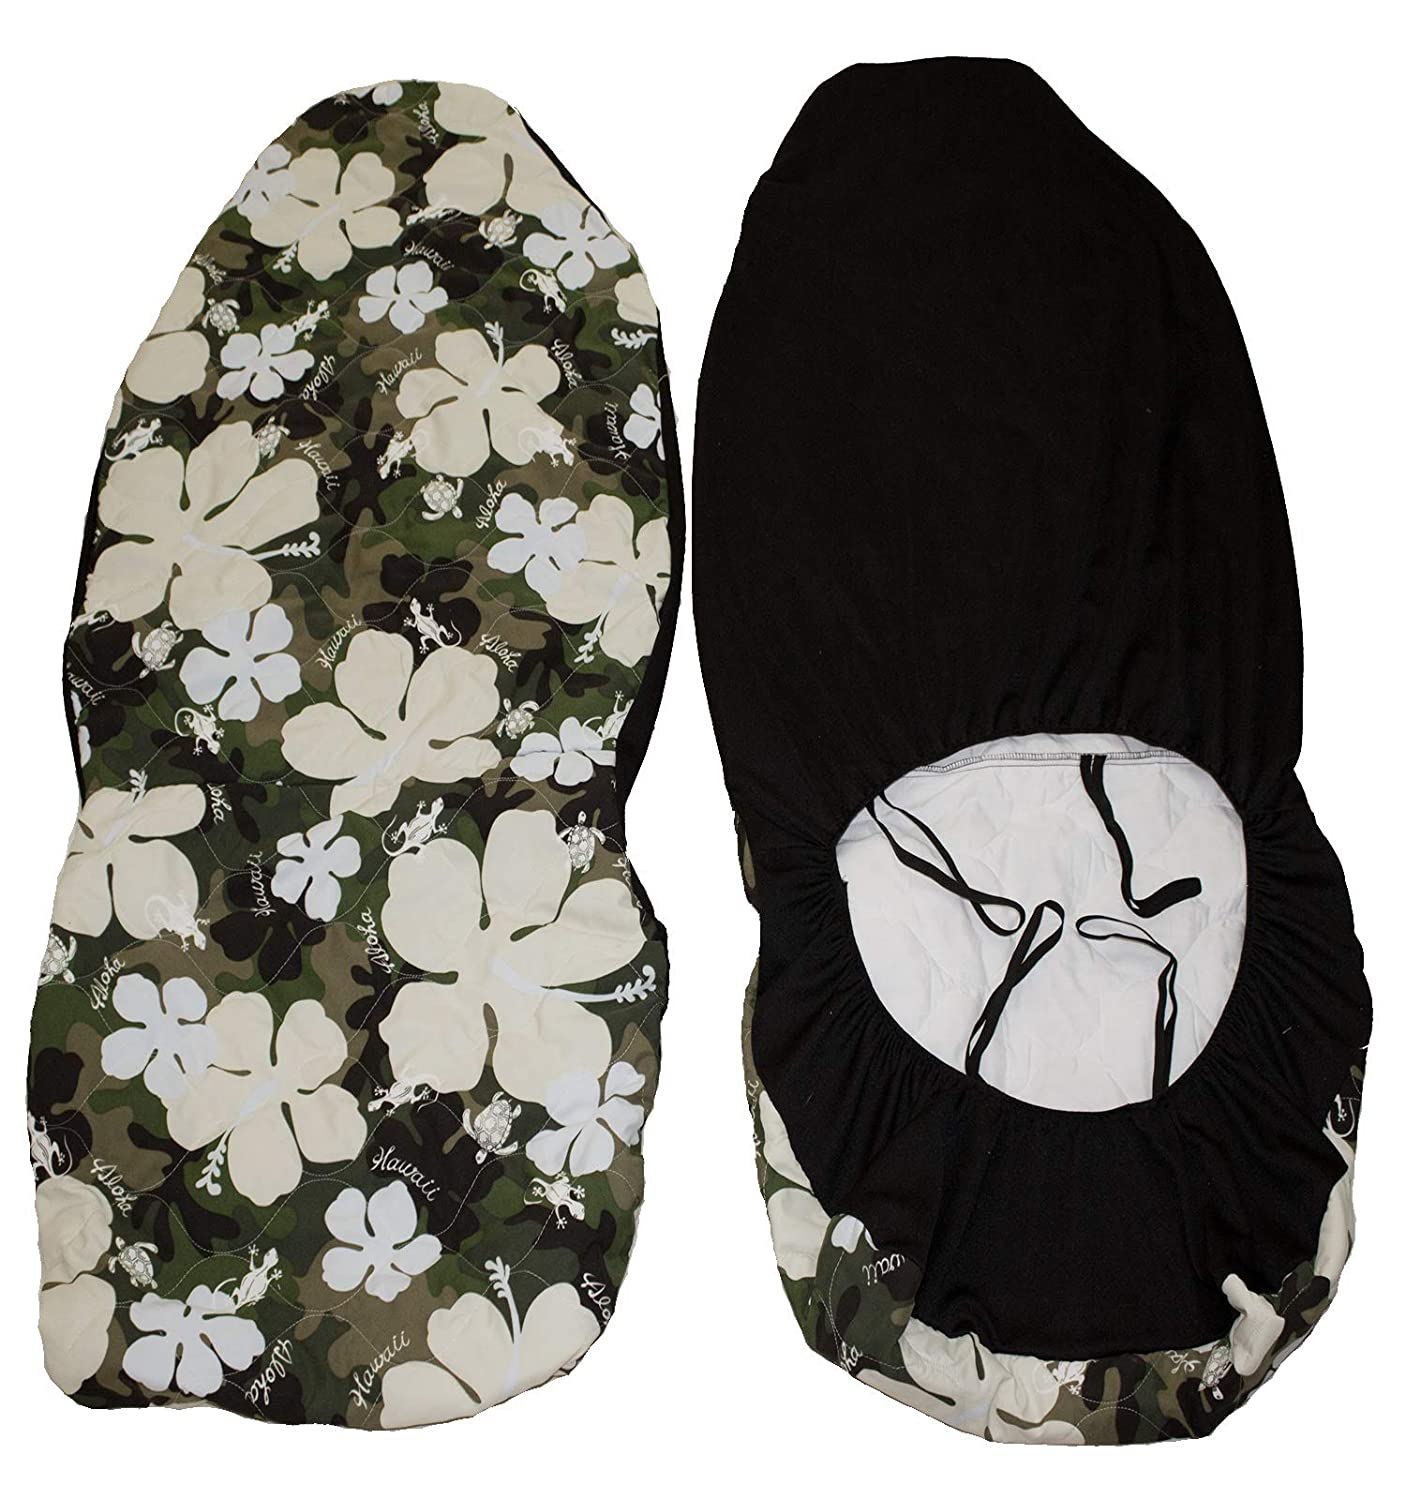 Hawaiian Car Seat Covers >> Hawaiian Car Seat Covers Brown Gego Set Of 2 Front Bucket Seat Covers Made In Hawaii Usa